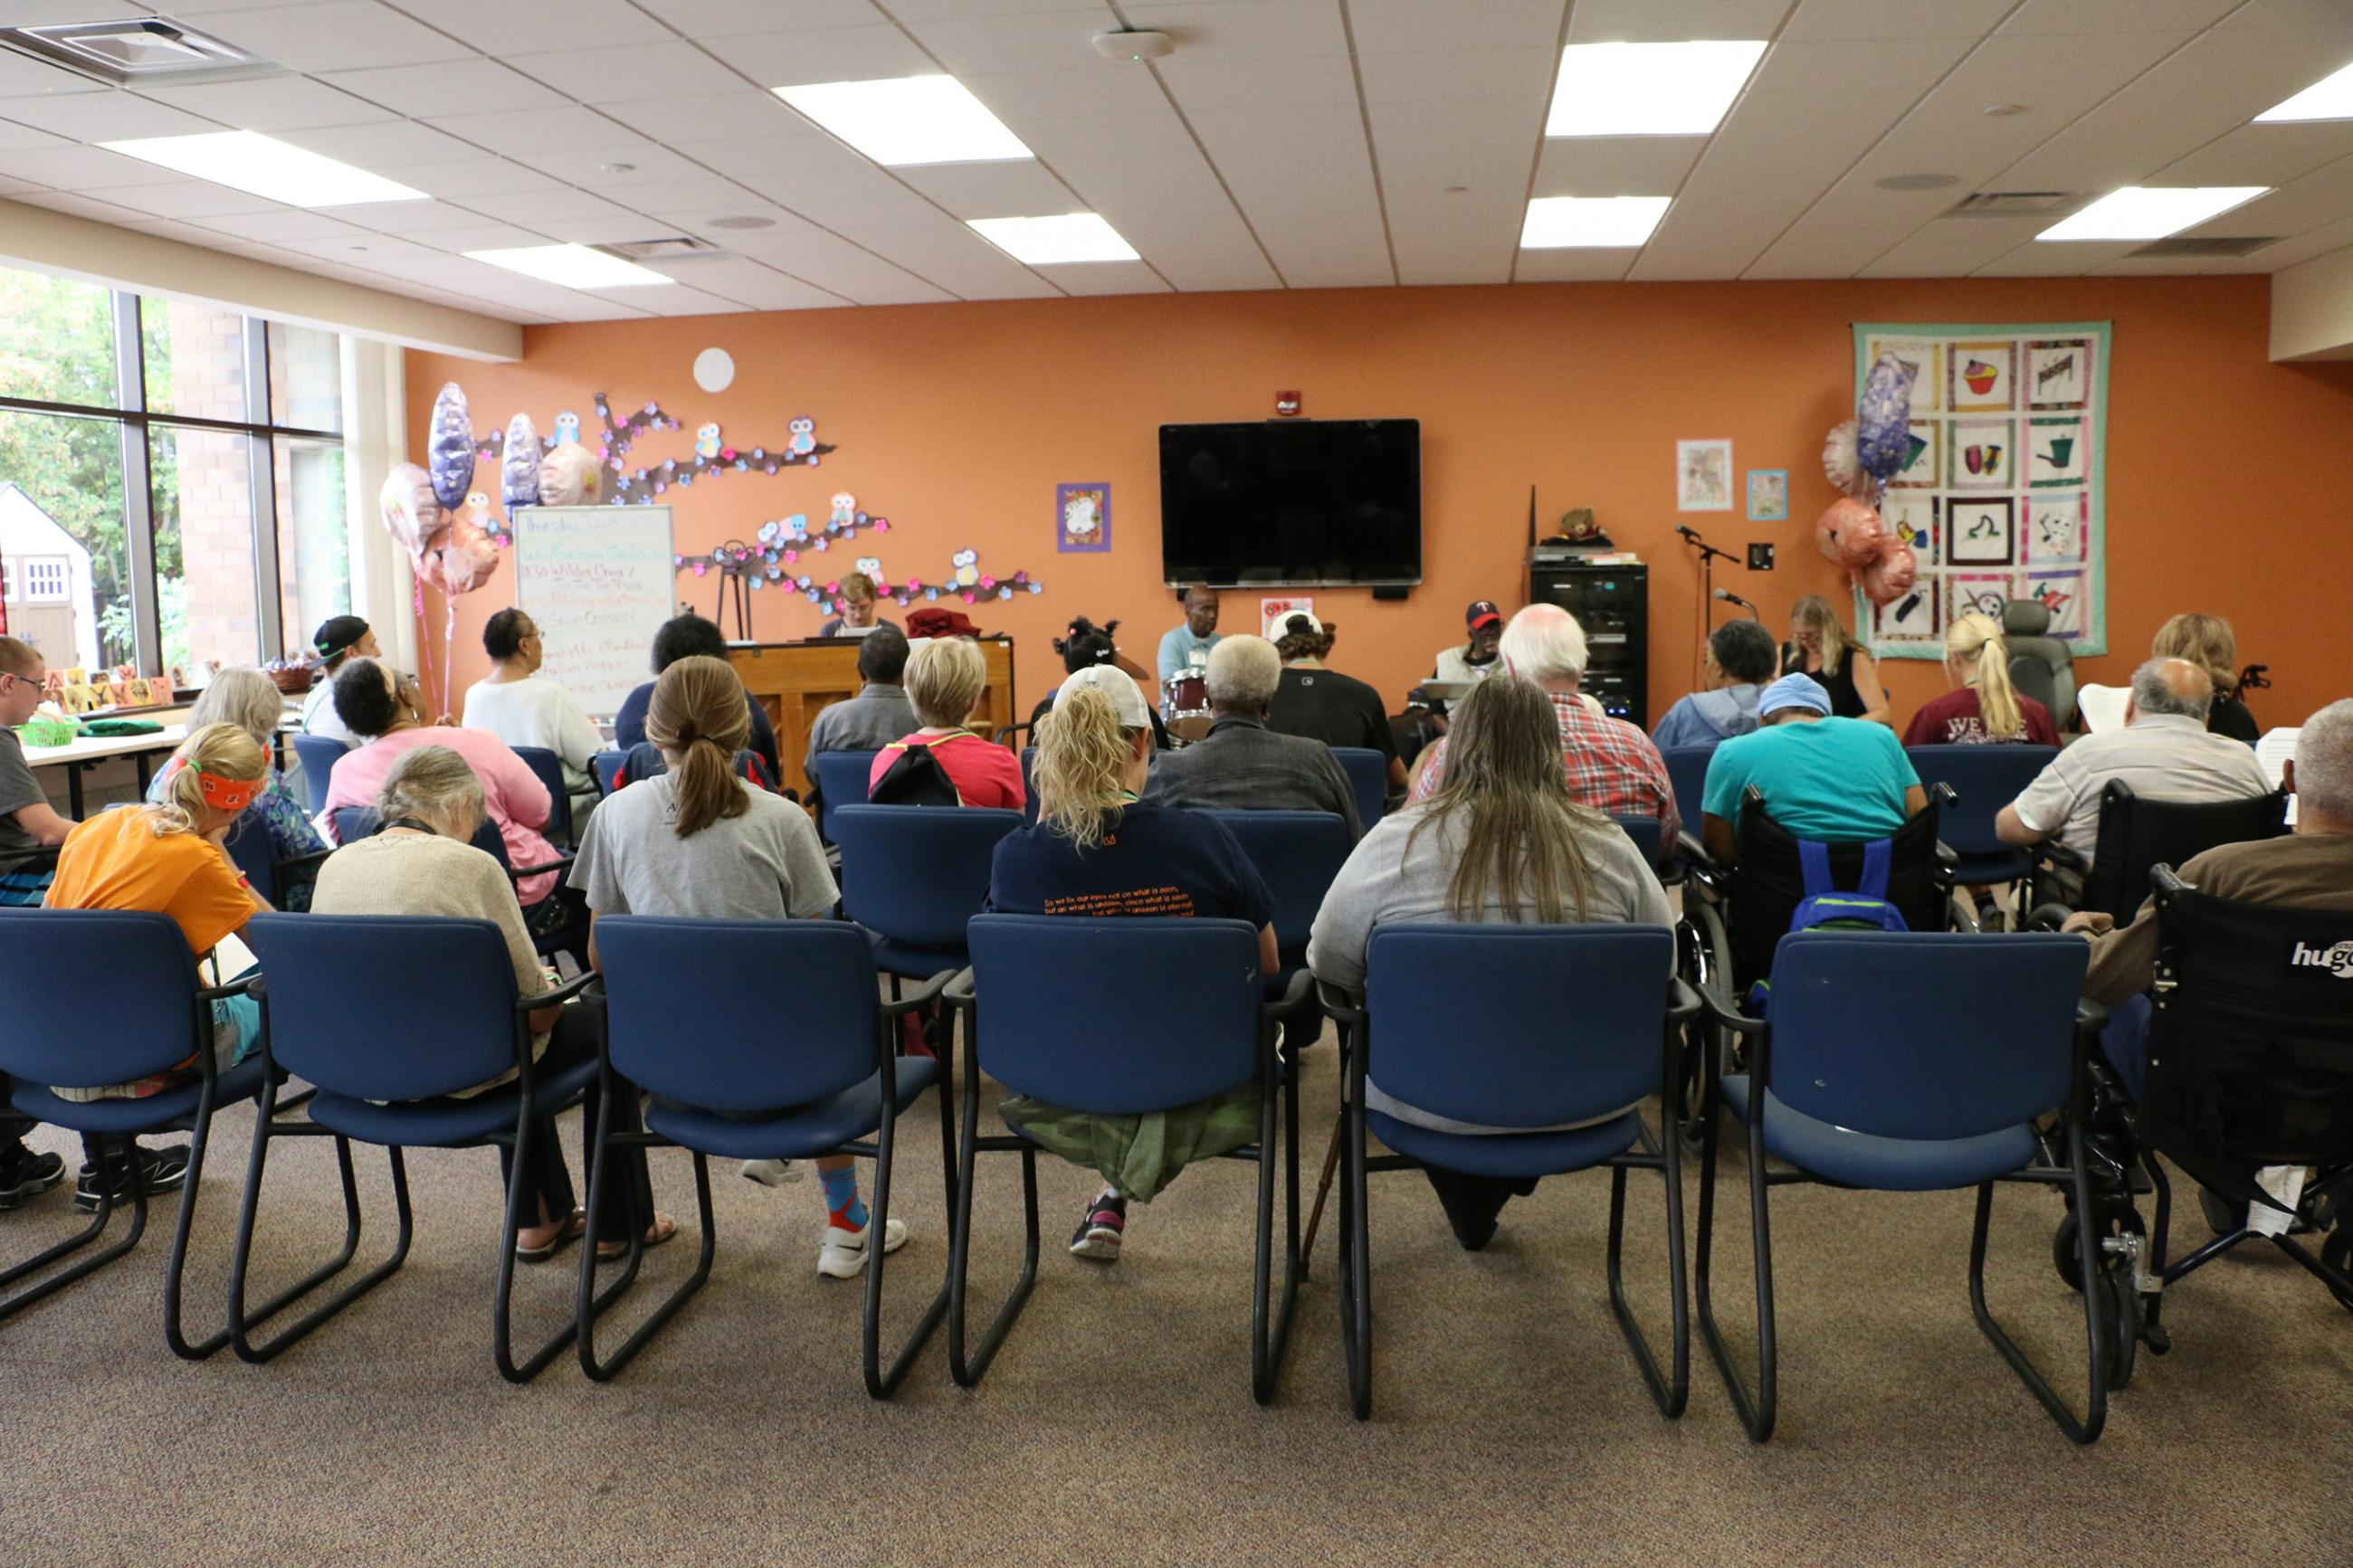 Adult Day Health Program participants enjoy music and singing as part of their daily routine of creative activities